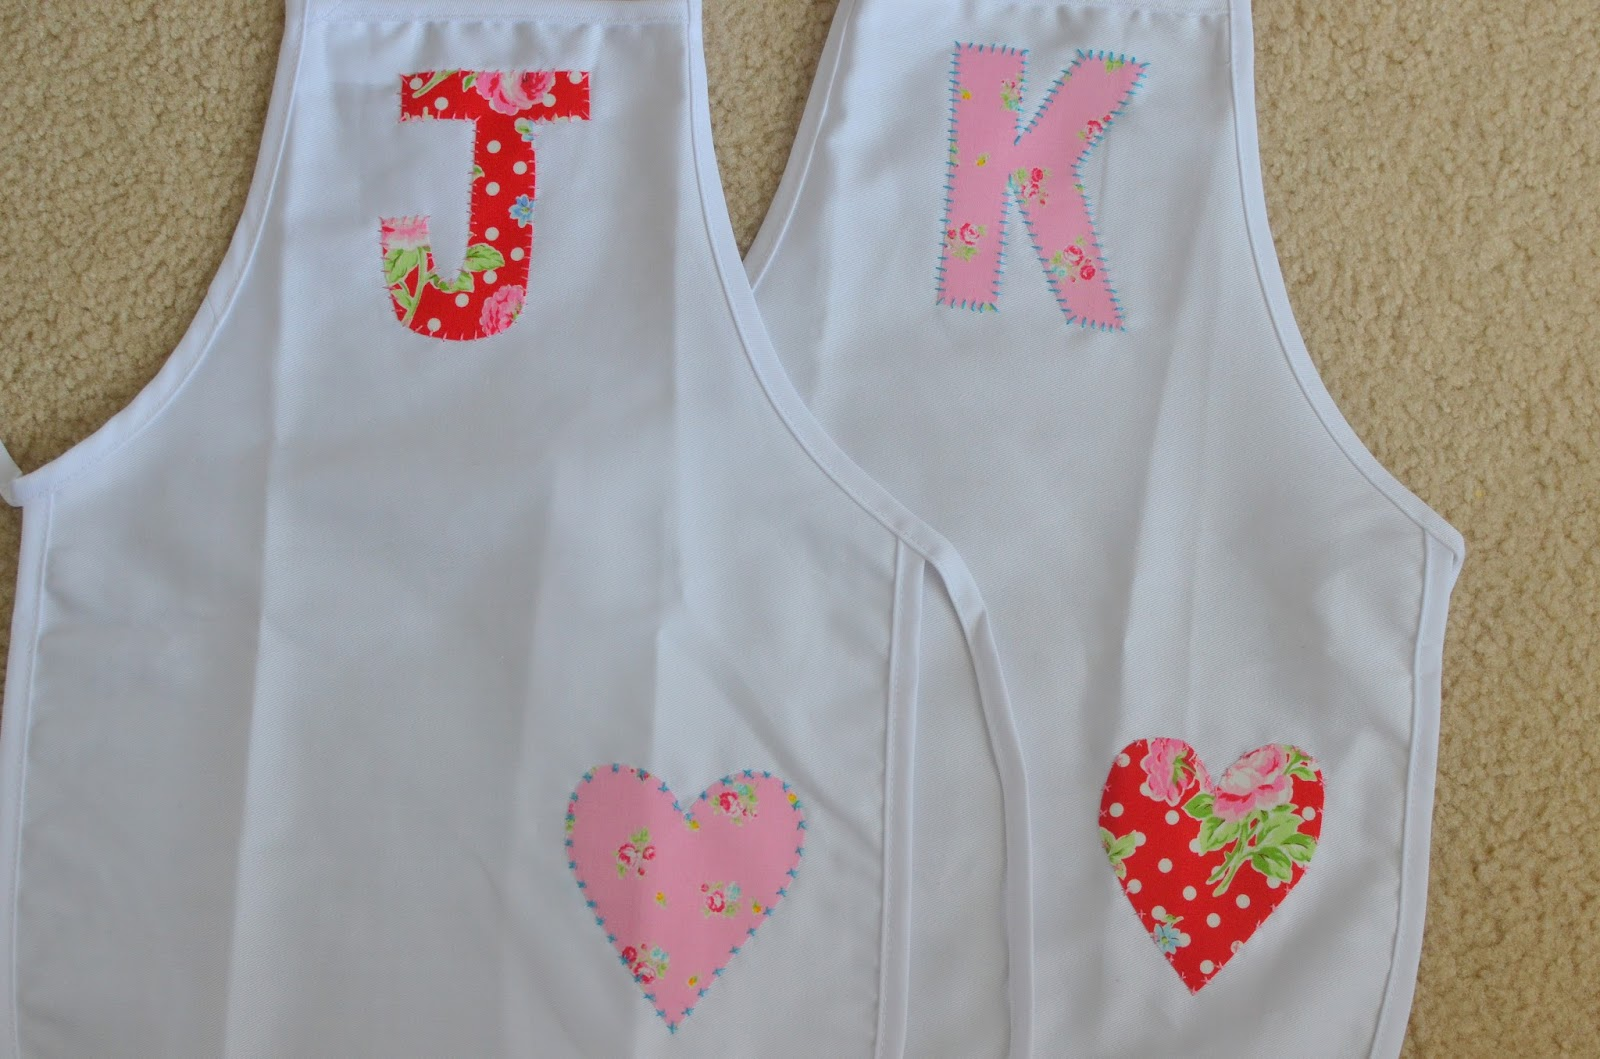 White apron hobby lobby - I Made These Appliqued Aprons Birthday Gifts For Two Of My Nieces Who Live In New York The Aprons Are Pre Made Ones From Hobby Lobby I Used Heat N Bond